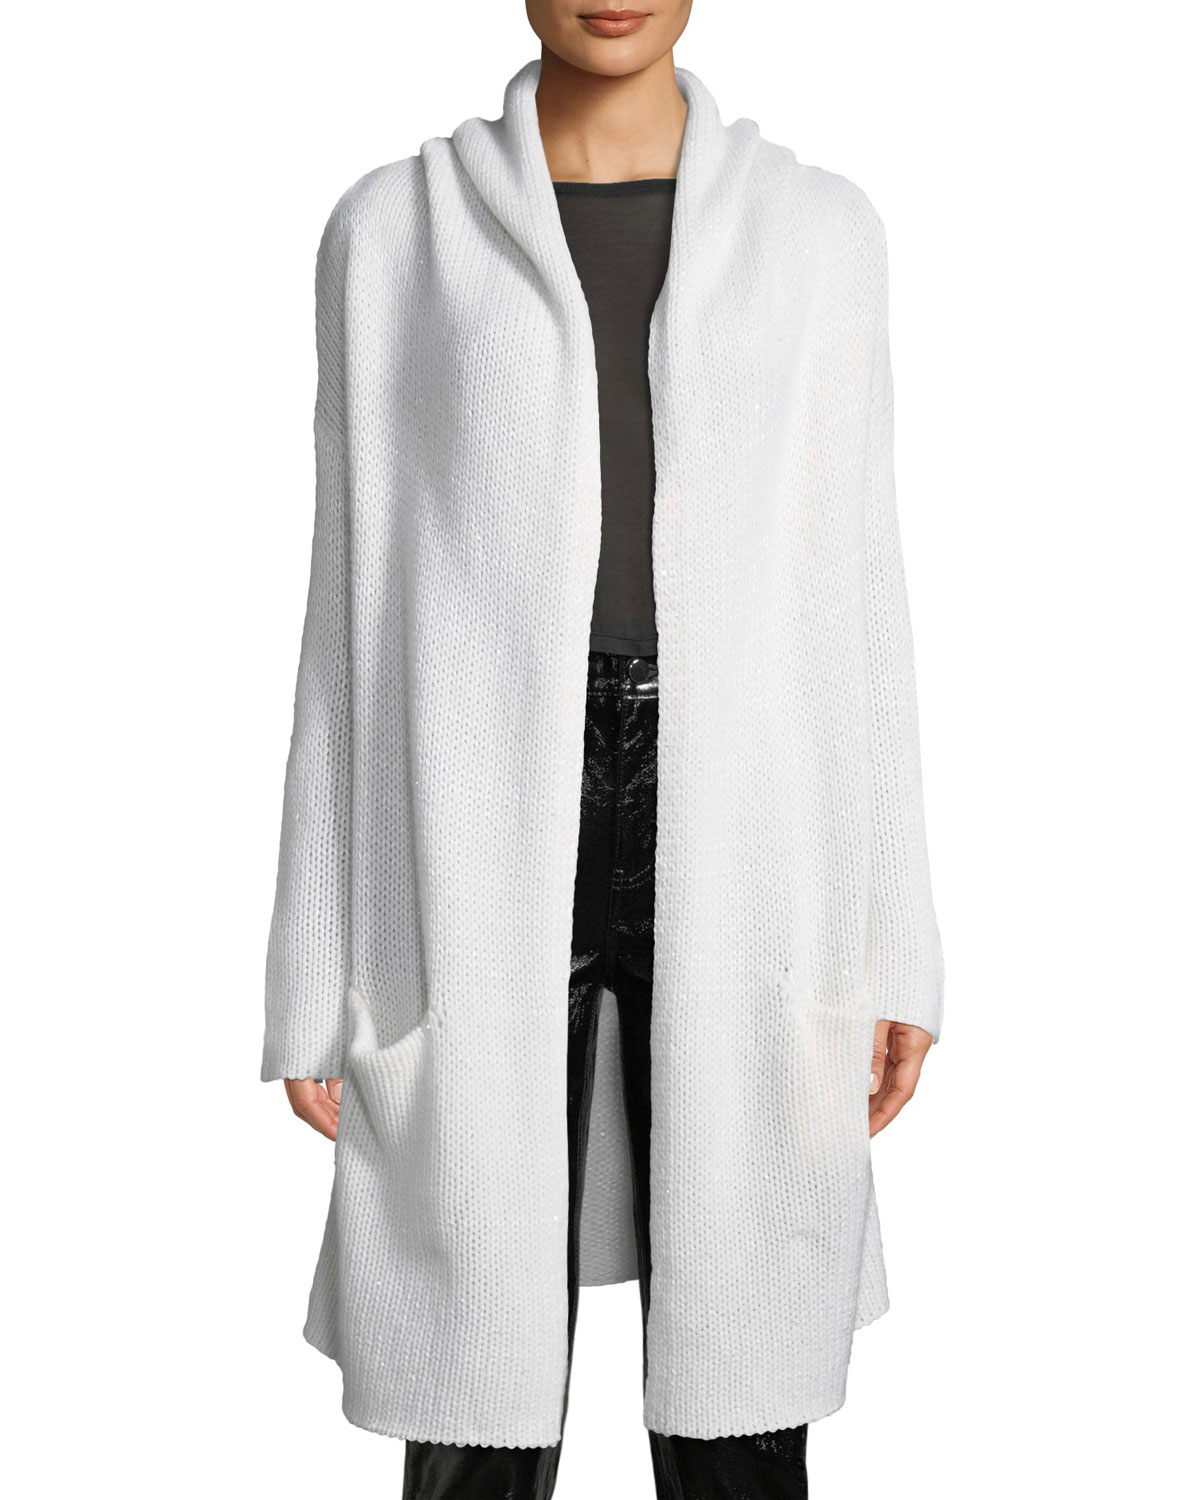 SABLYN Collete Hooded Open-Front Long Cardigan in White